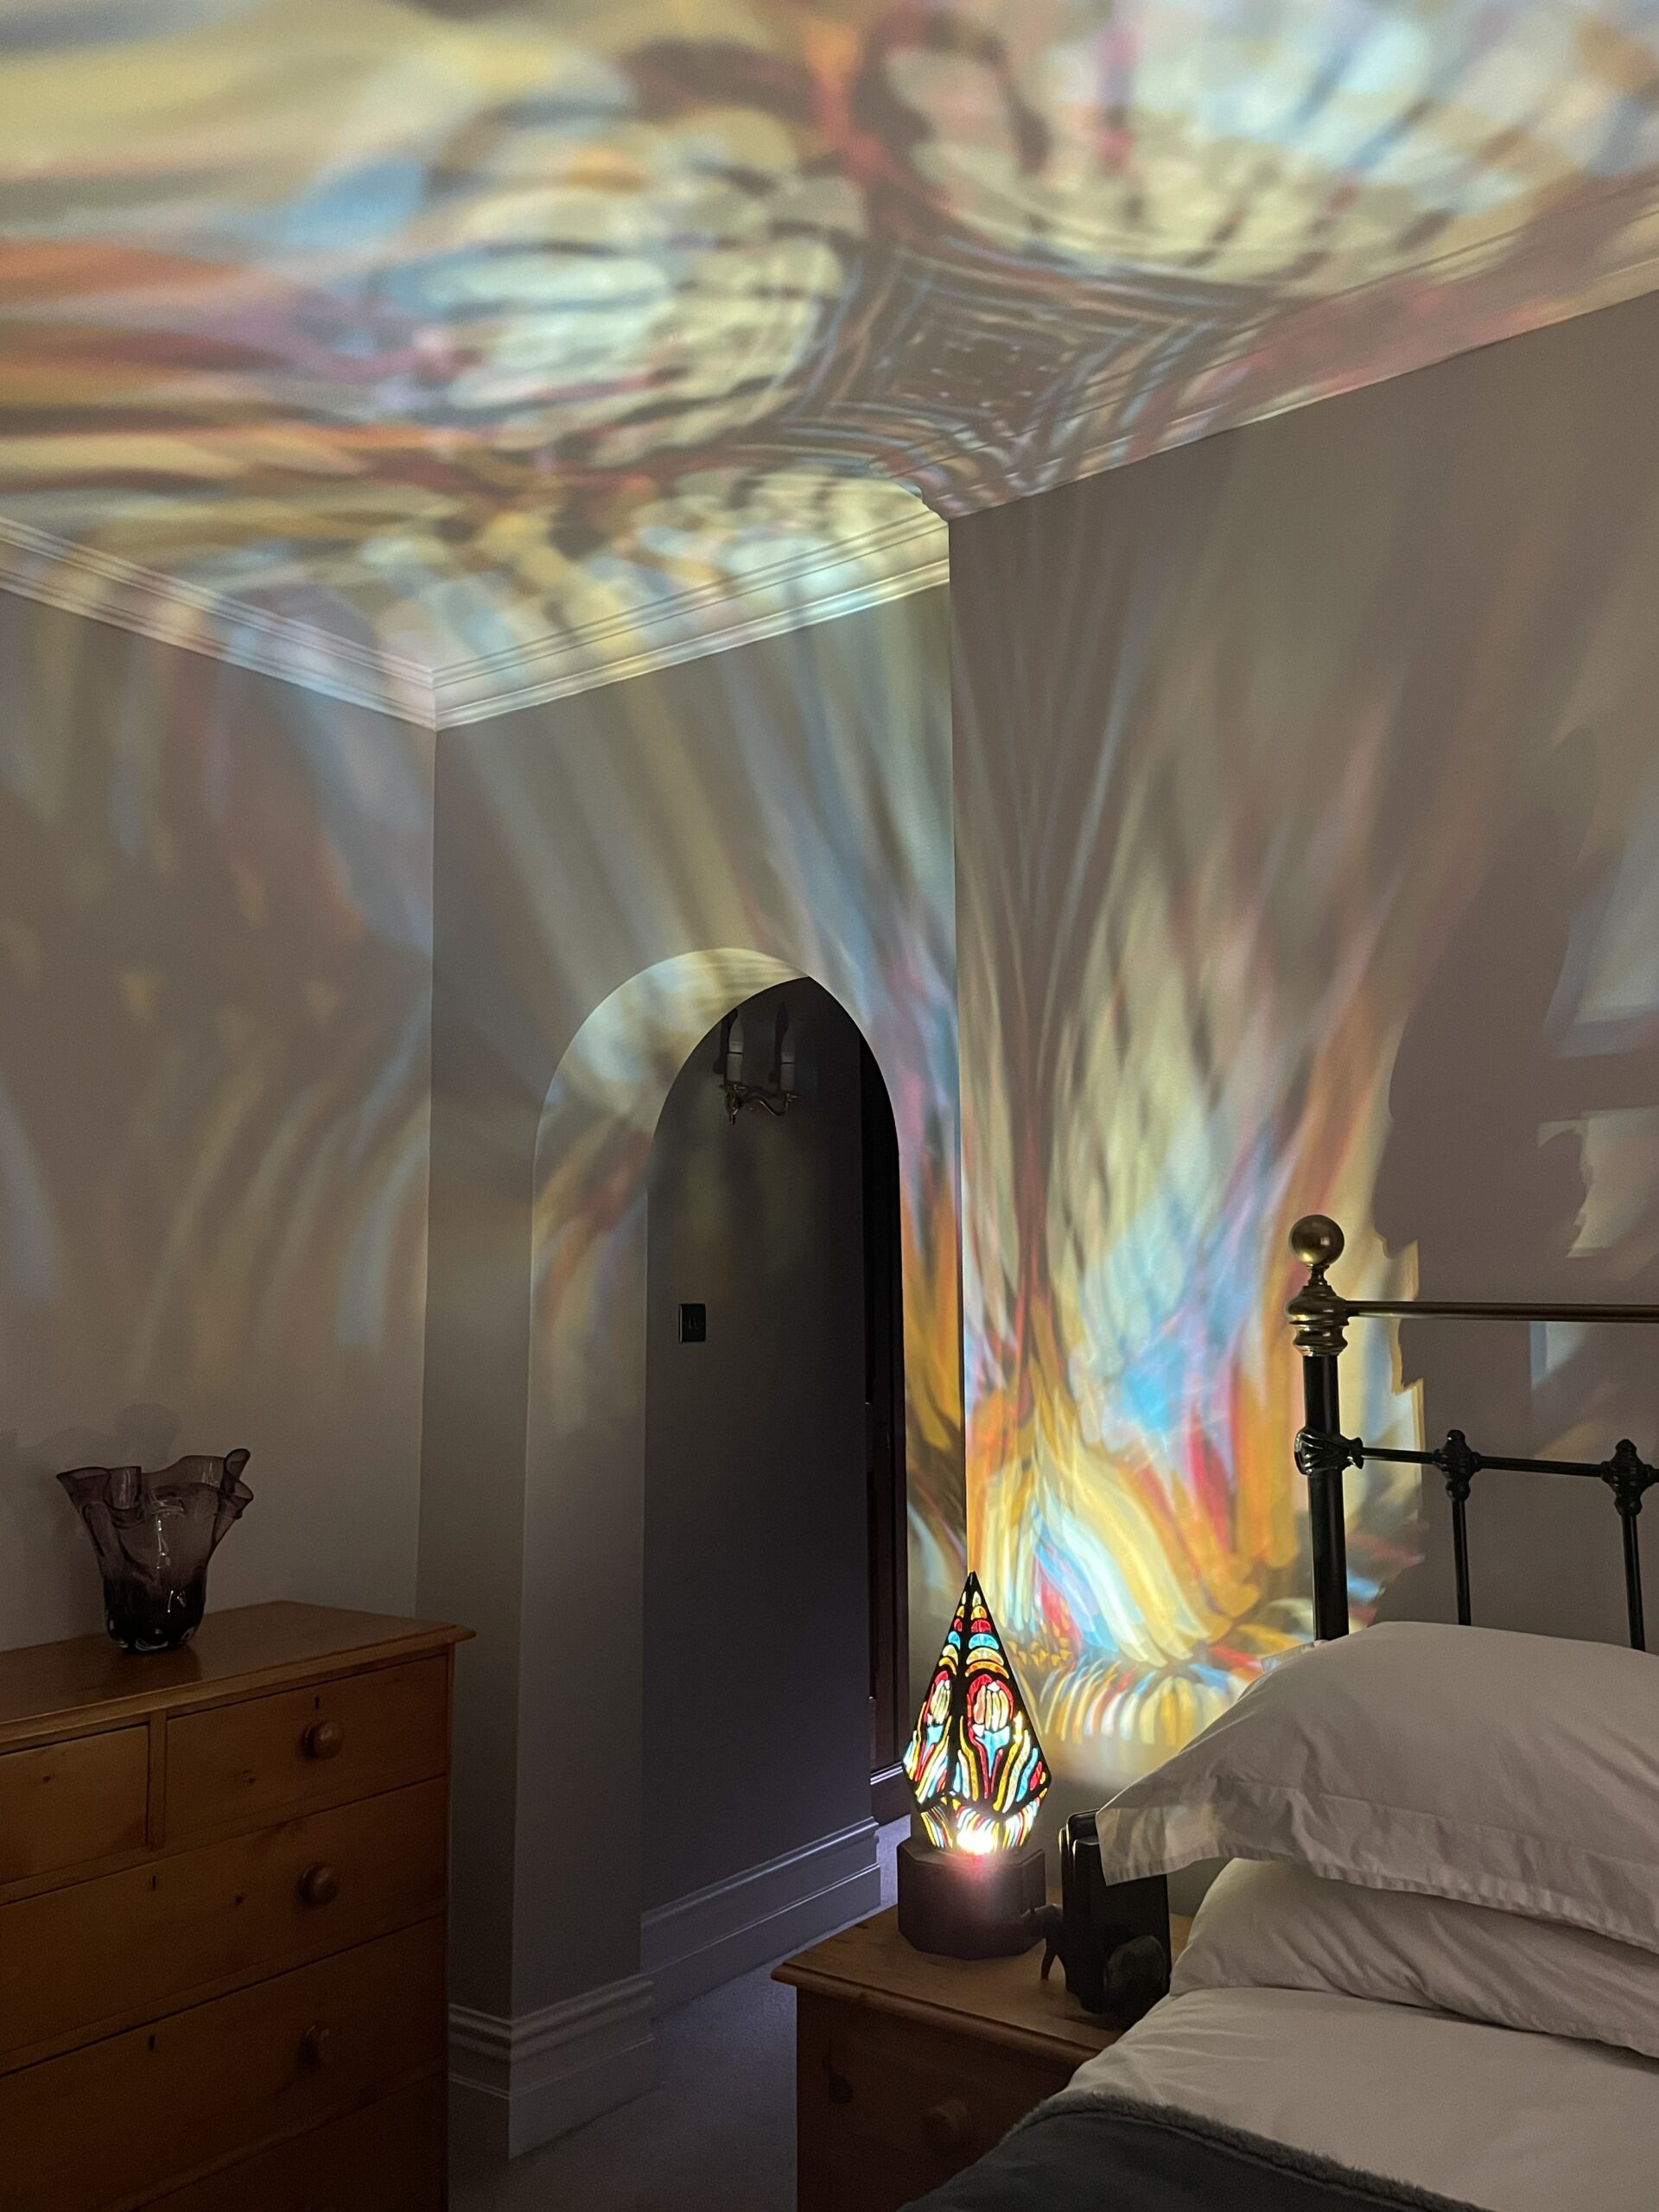 Megans lamp in a bedroom, throwing light across the wall and ceiling